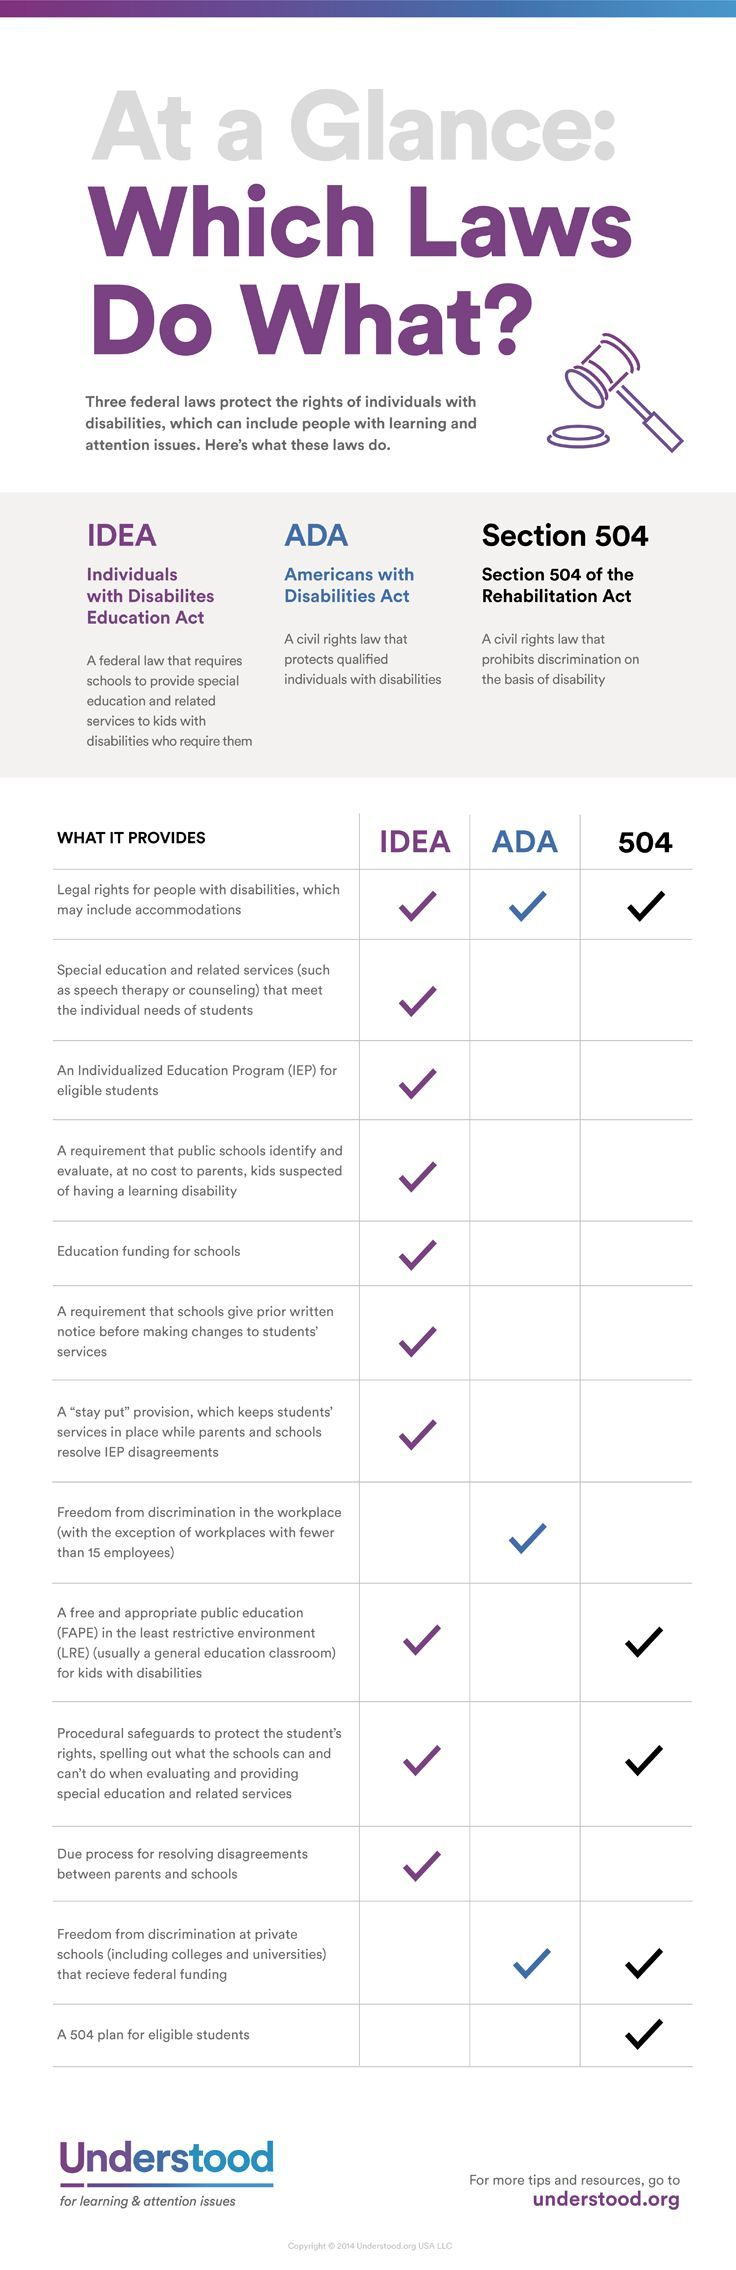 IDEA, Section 504, and the ADA: Which Laws Do What